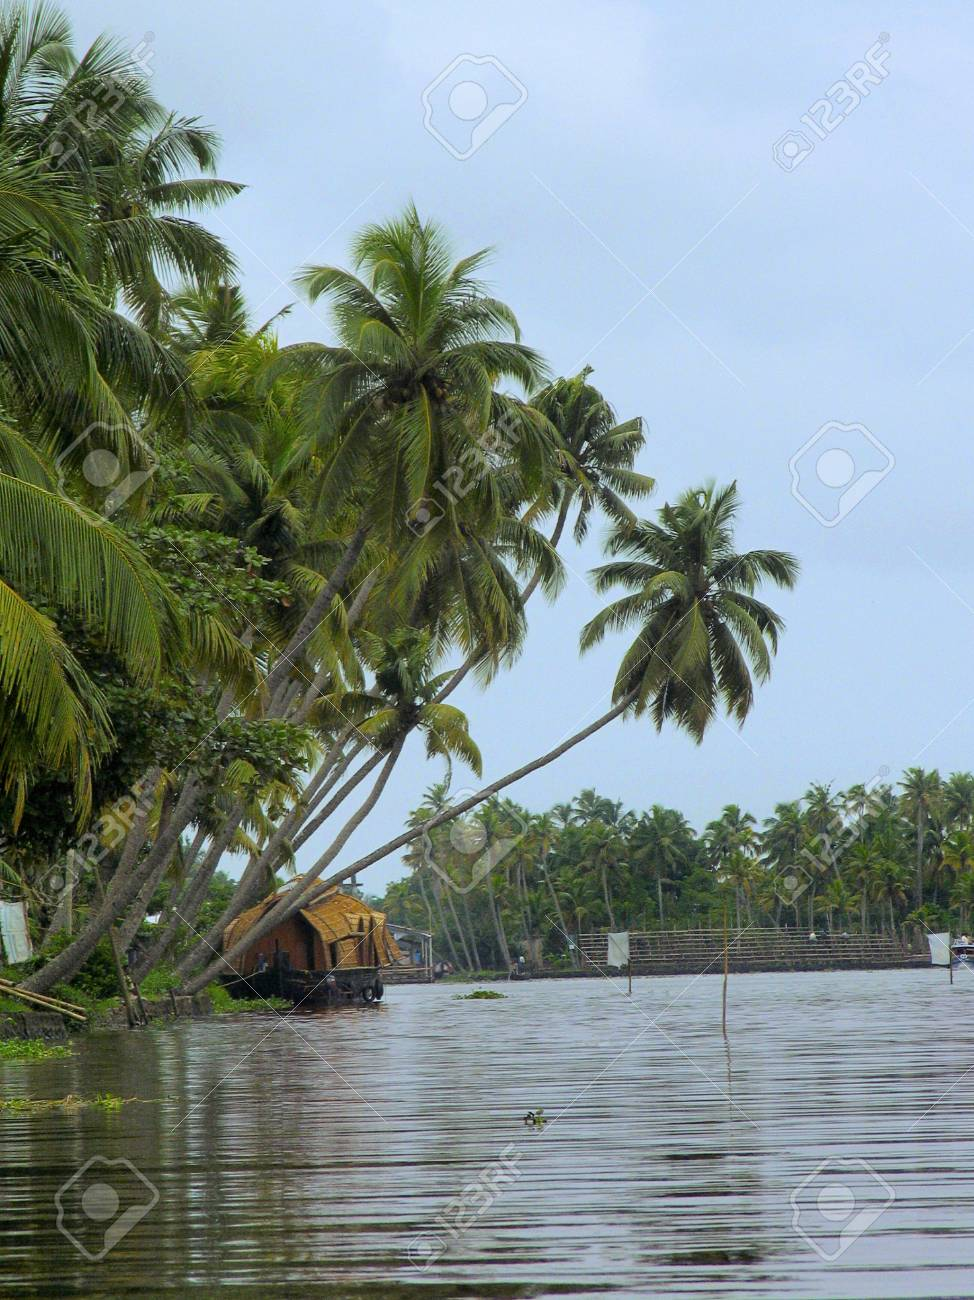 Landscape And Backwaters Of Kerala India Stock Photo Picture And Royalty Free Image Image 93273110